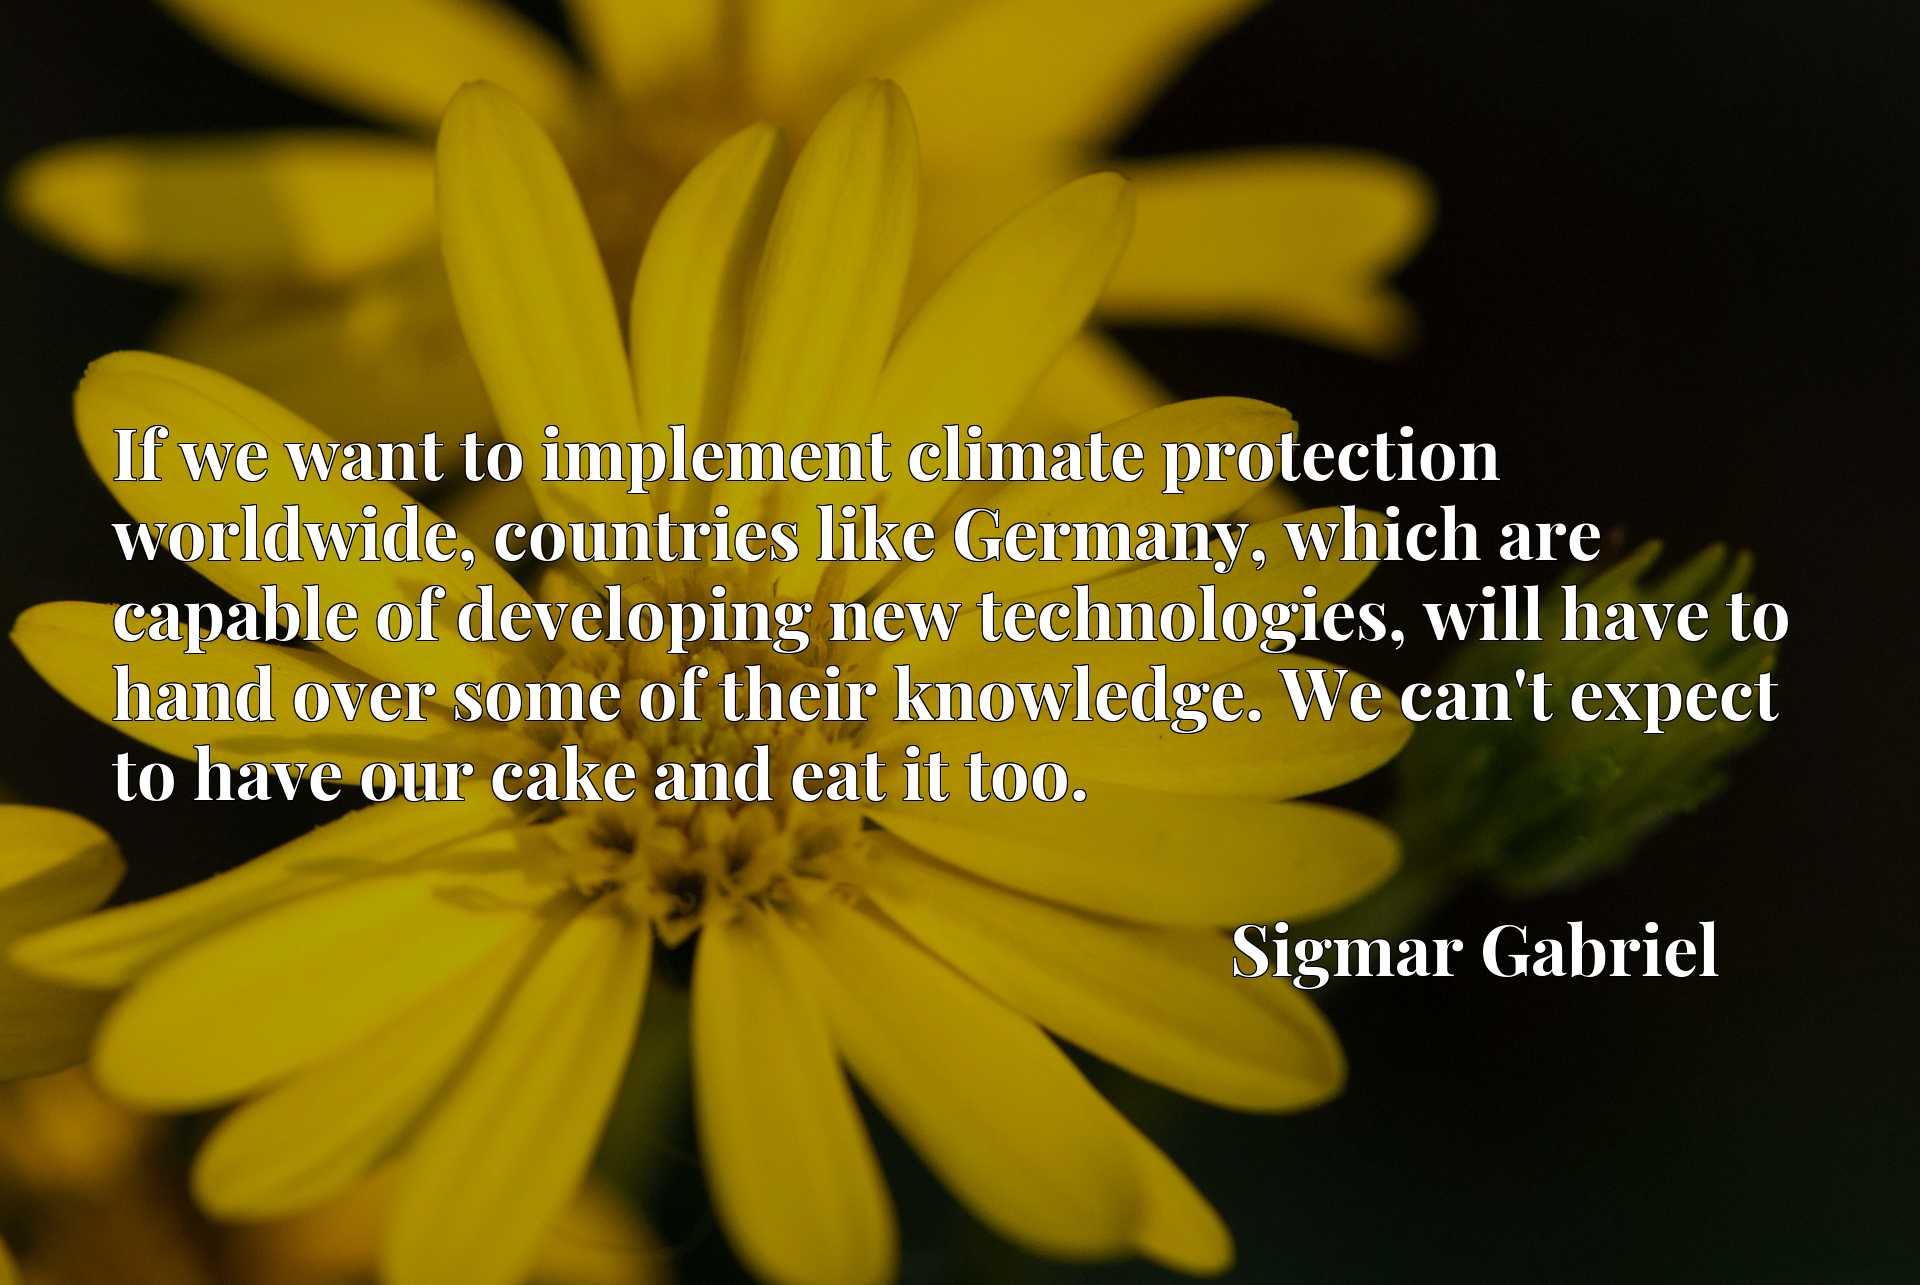 Quote Picture :If we want to implement climate protection worldwide, countries like Germany, which are capable of developing new technologies, will have to hand over some of their knowledge. We can't expect to have our cake and eat it too.